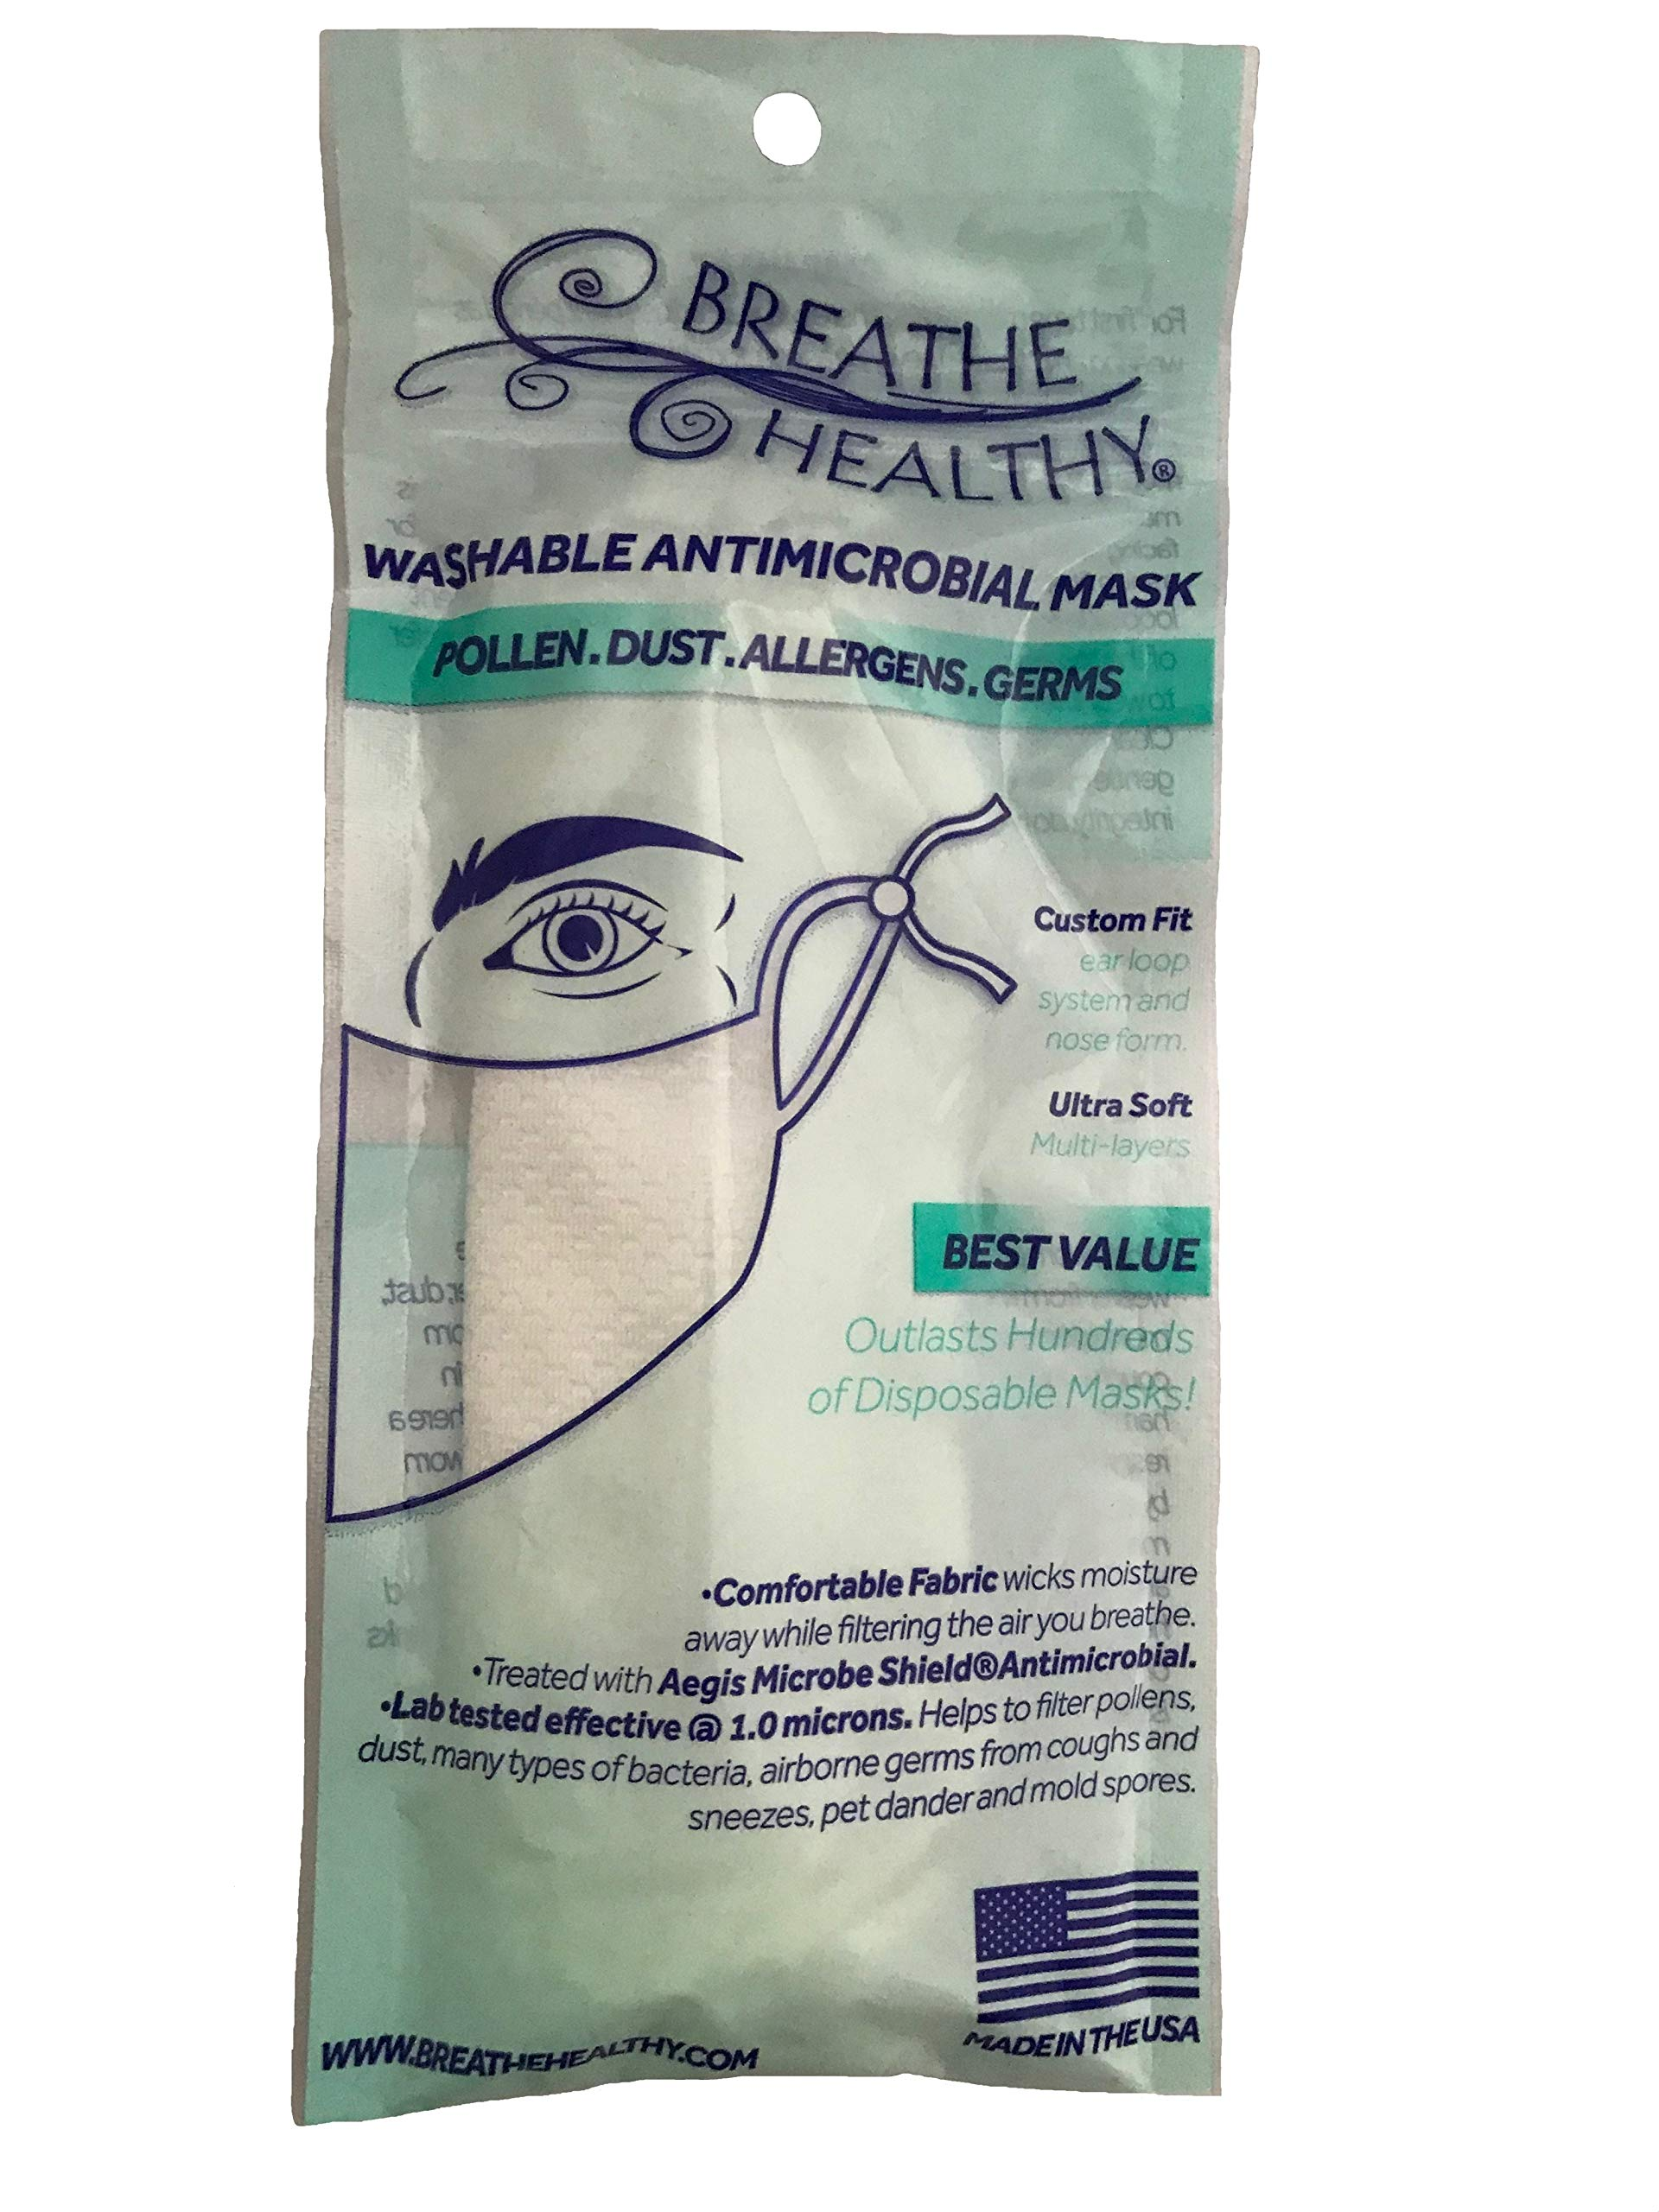 Breathe Healthy Dust, Allergy & Flu Mask - Comfortable, Washable Protection from Dust, Pollen, Allergens, Cold & Flu Germs with Antimicrobial; Asthma Mask; Pink Dogwwd Design (Adult)